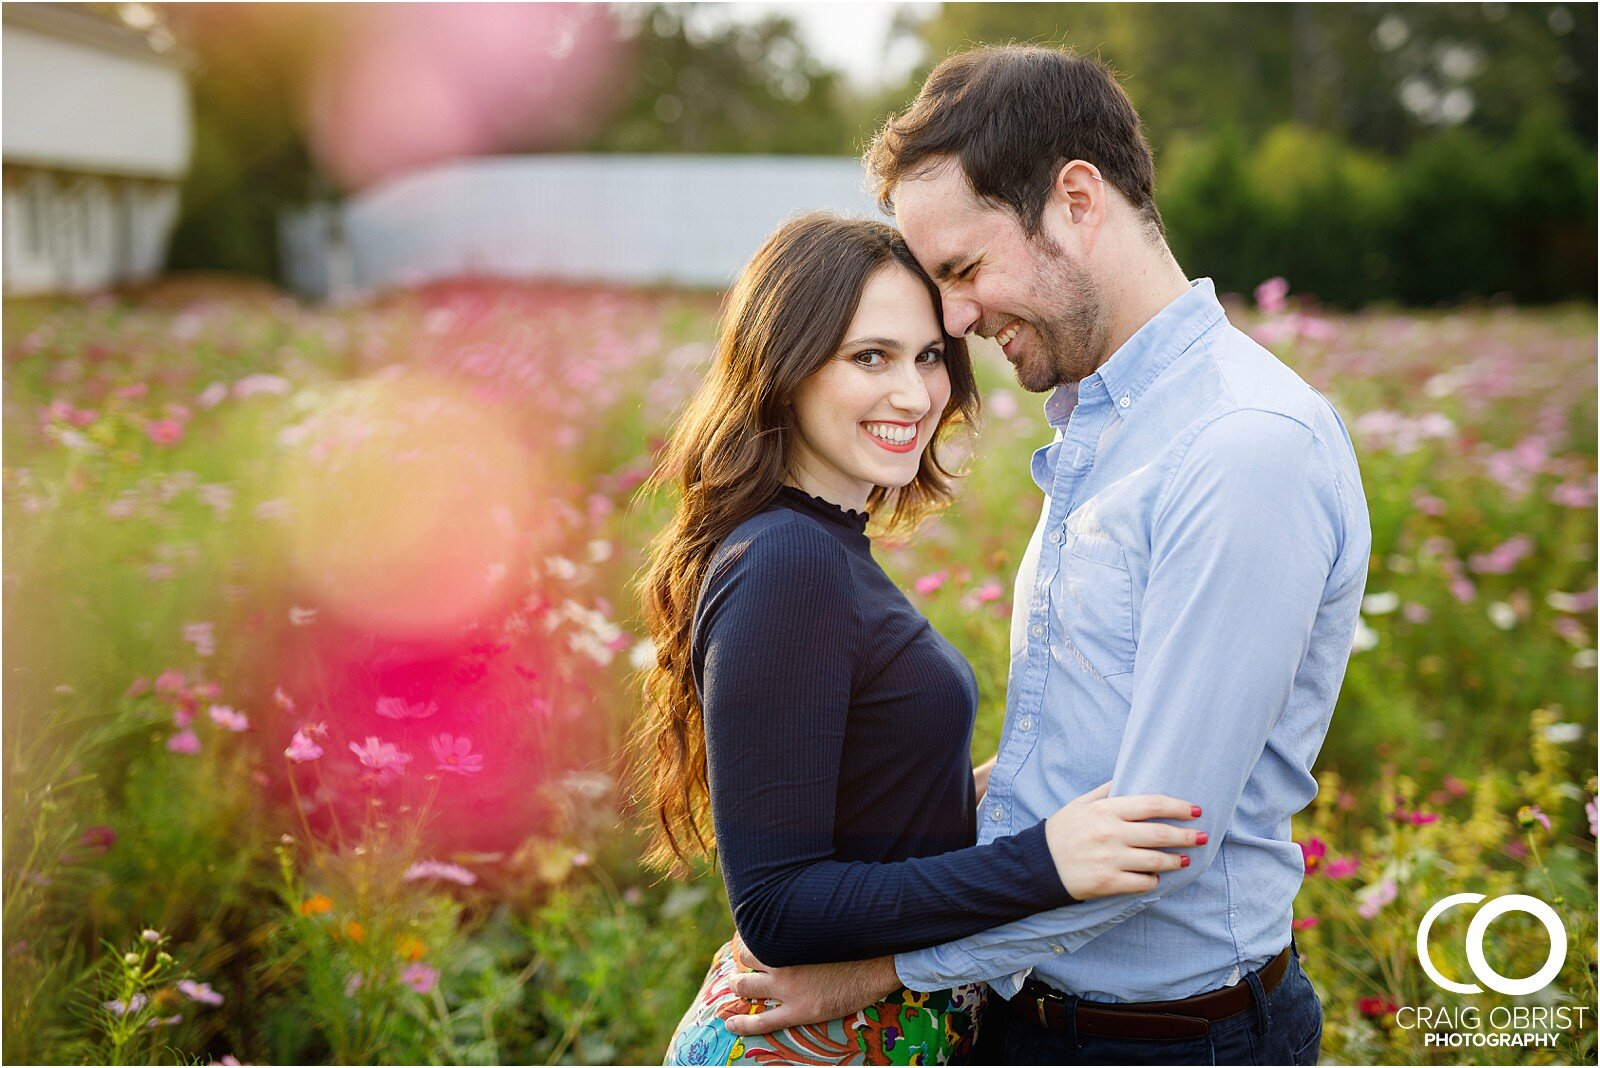 The Barn at Little River Little River Farms Engagement Wedding Portraits Fairy Tale_0018.jpg